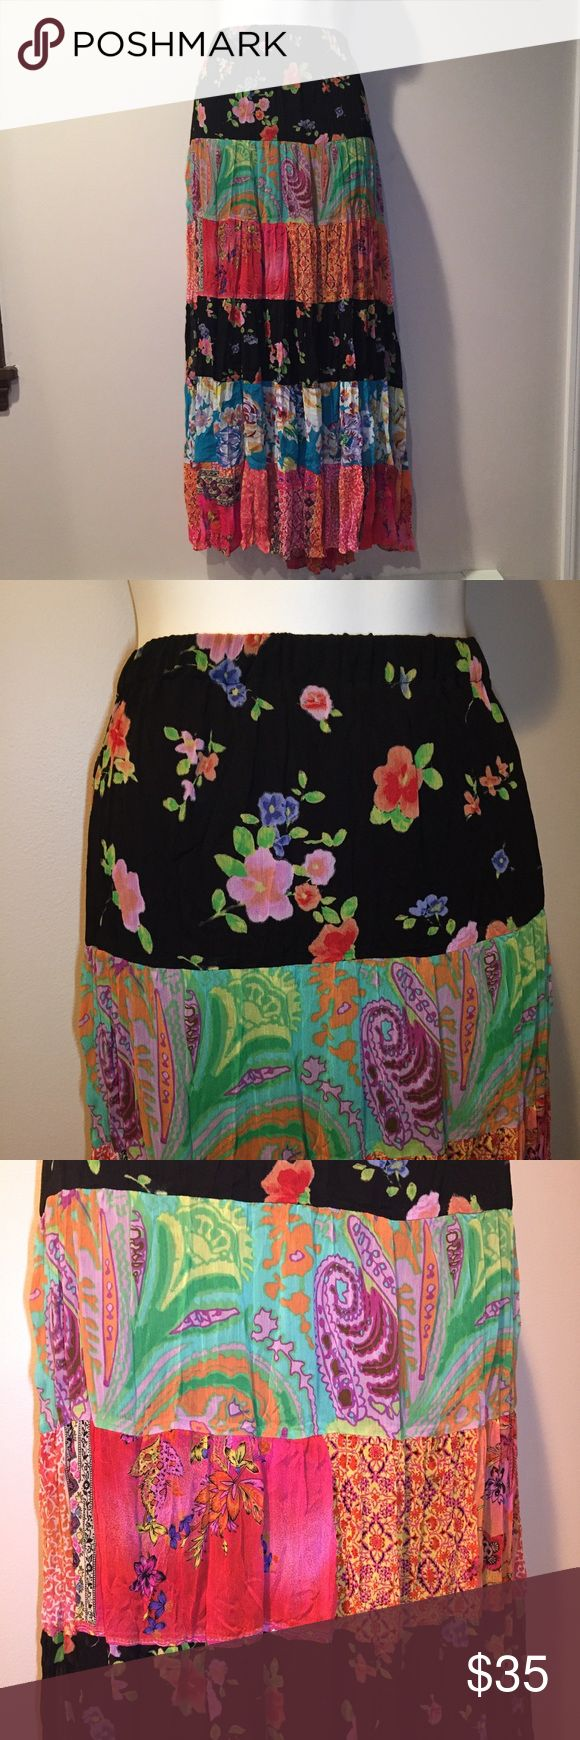 "Coldwater Creek floral flowy skirt. Size Large Excellent condition Coldwater Creek floral flowy skirt. Size Large. 17"" elastic waist (laying flat) 36"" long. Polyester. Coldwater Creek Skirts"